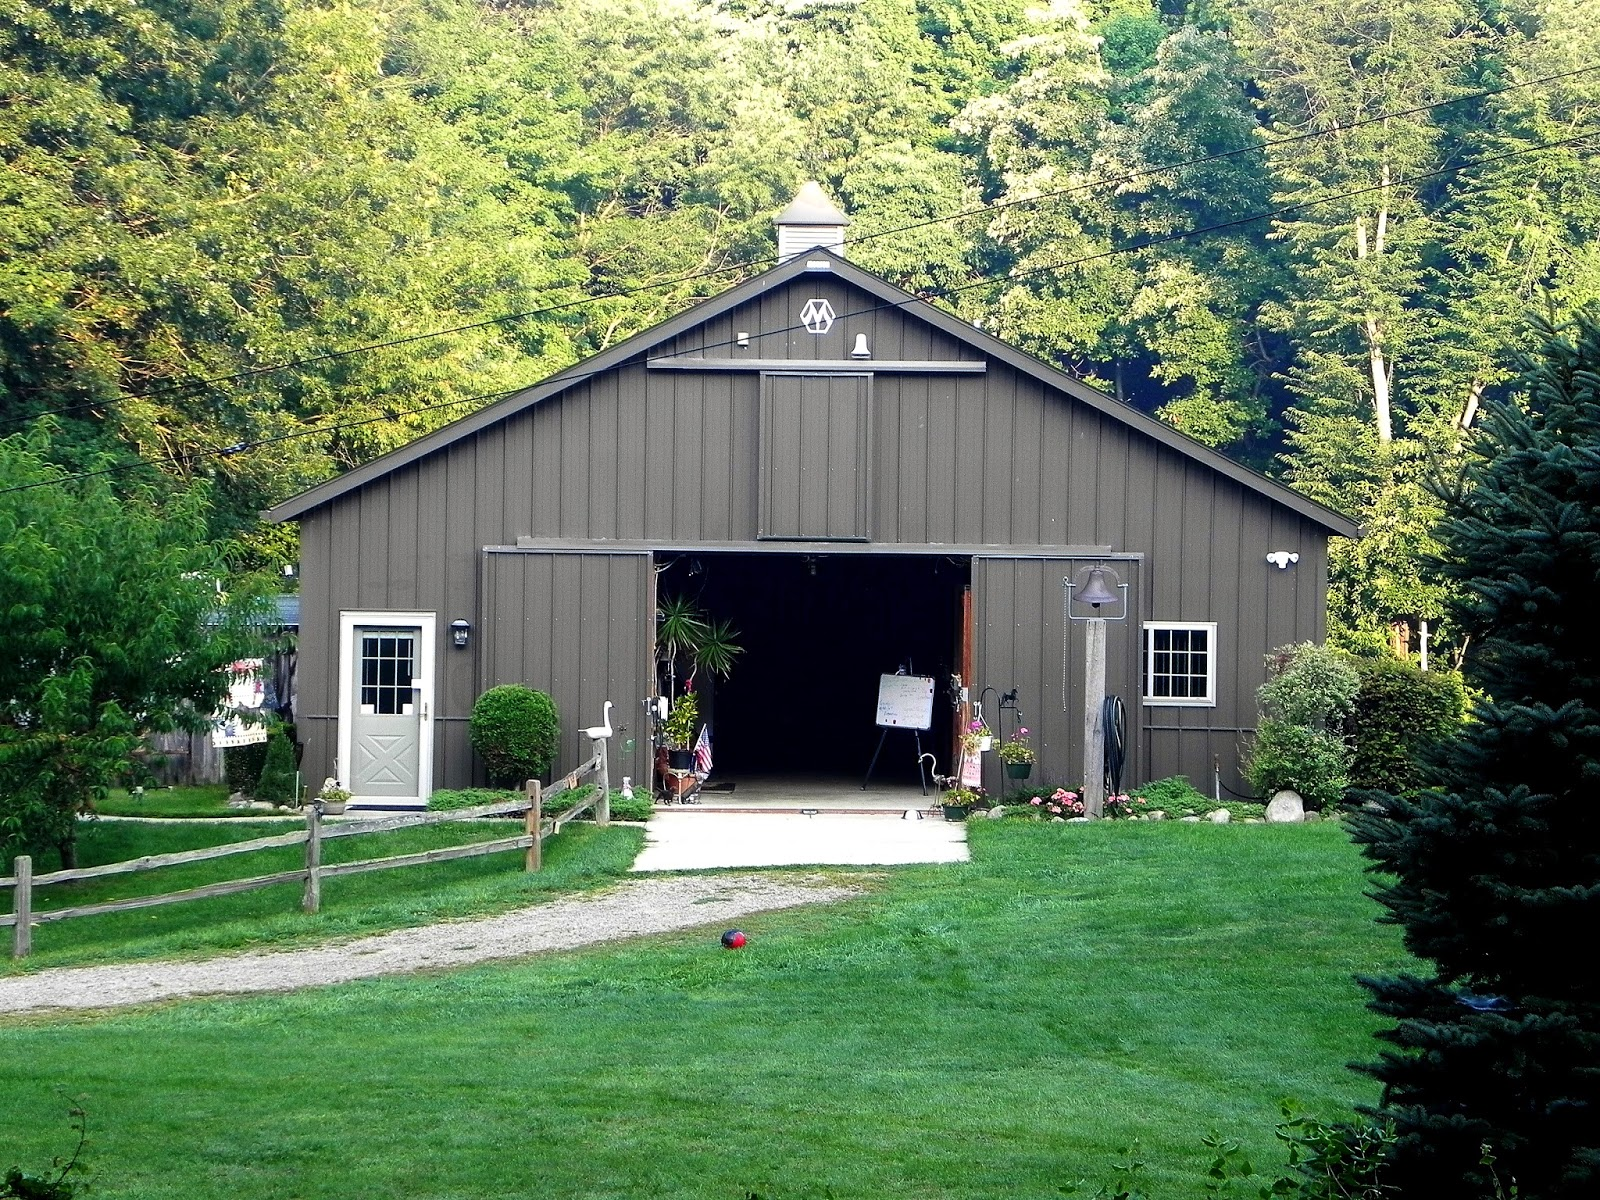 Morton pole barn homes joy studio design gallery best for How to build a pole barn home